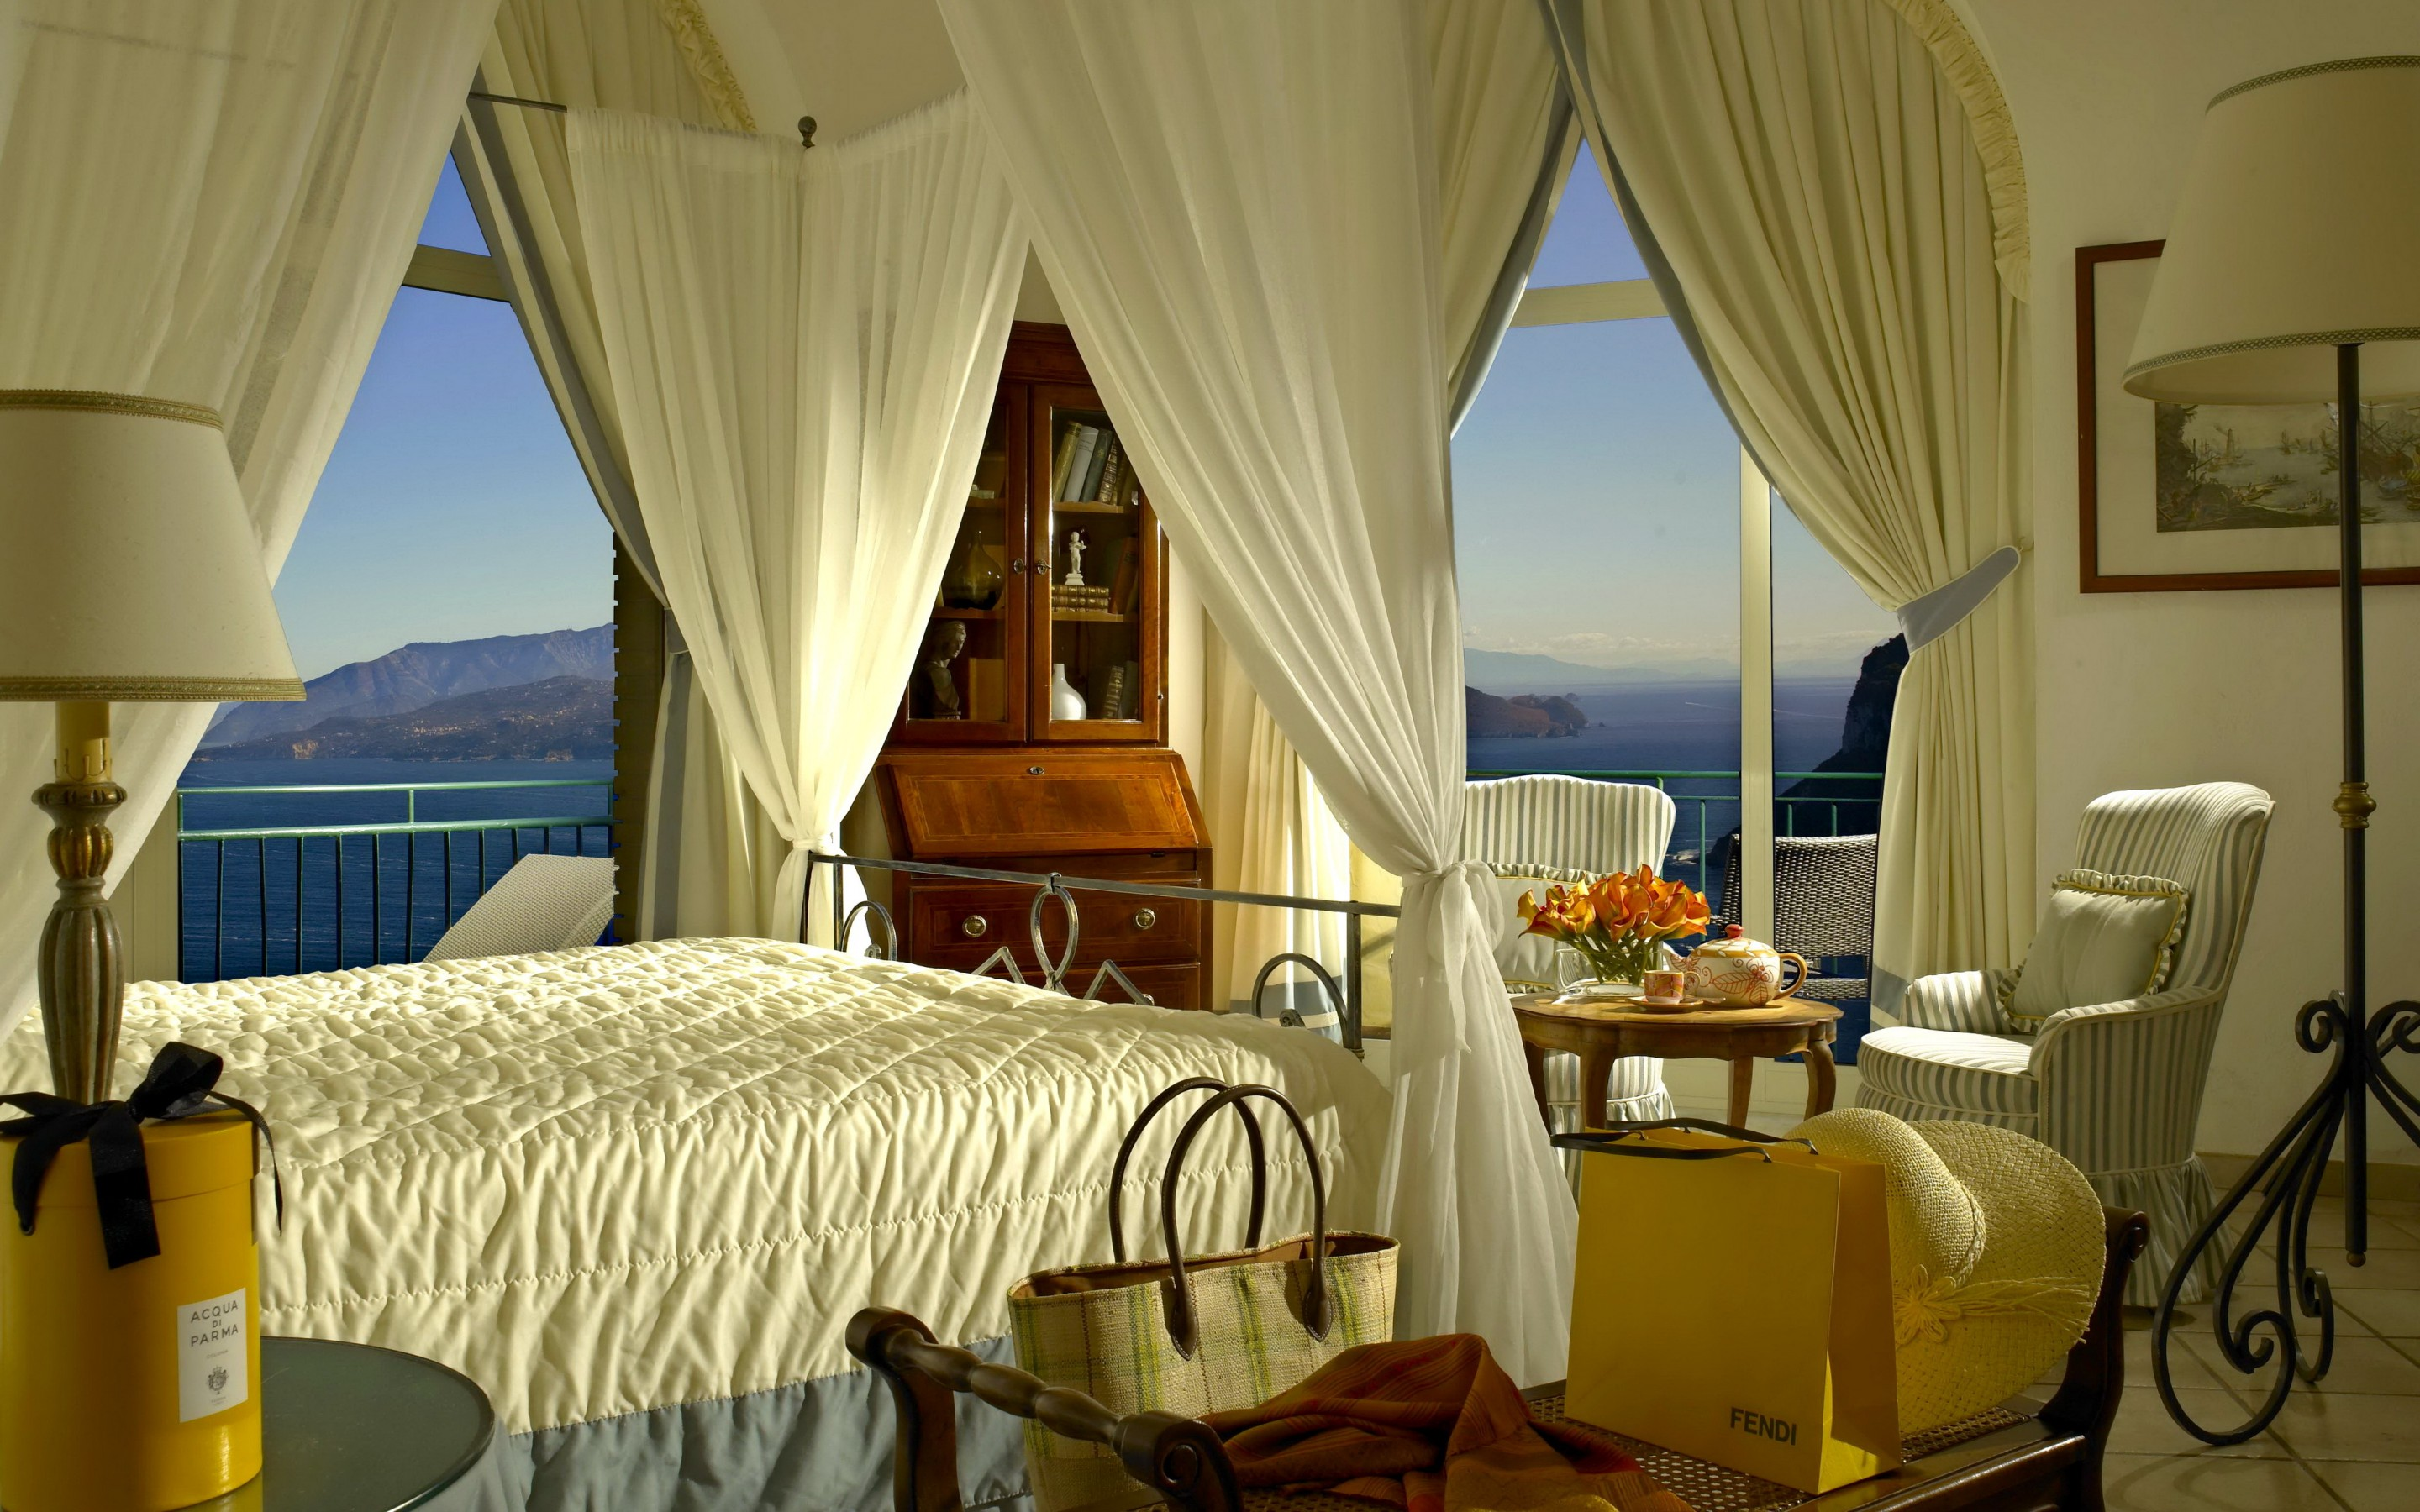 Hotel room bed canopy table chairs lamps interior design wallpaper 2880x1800 132700 - Hd room background images ...